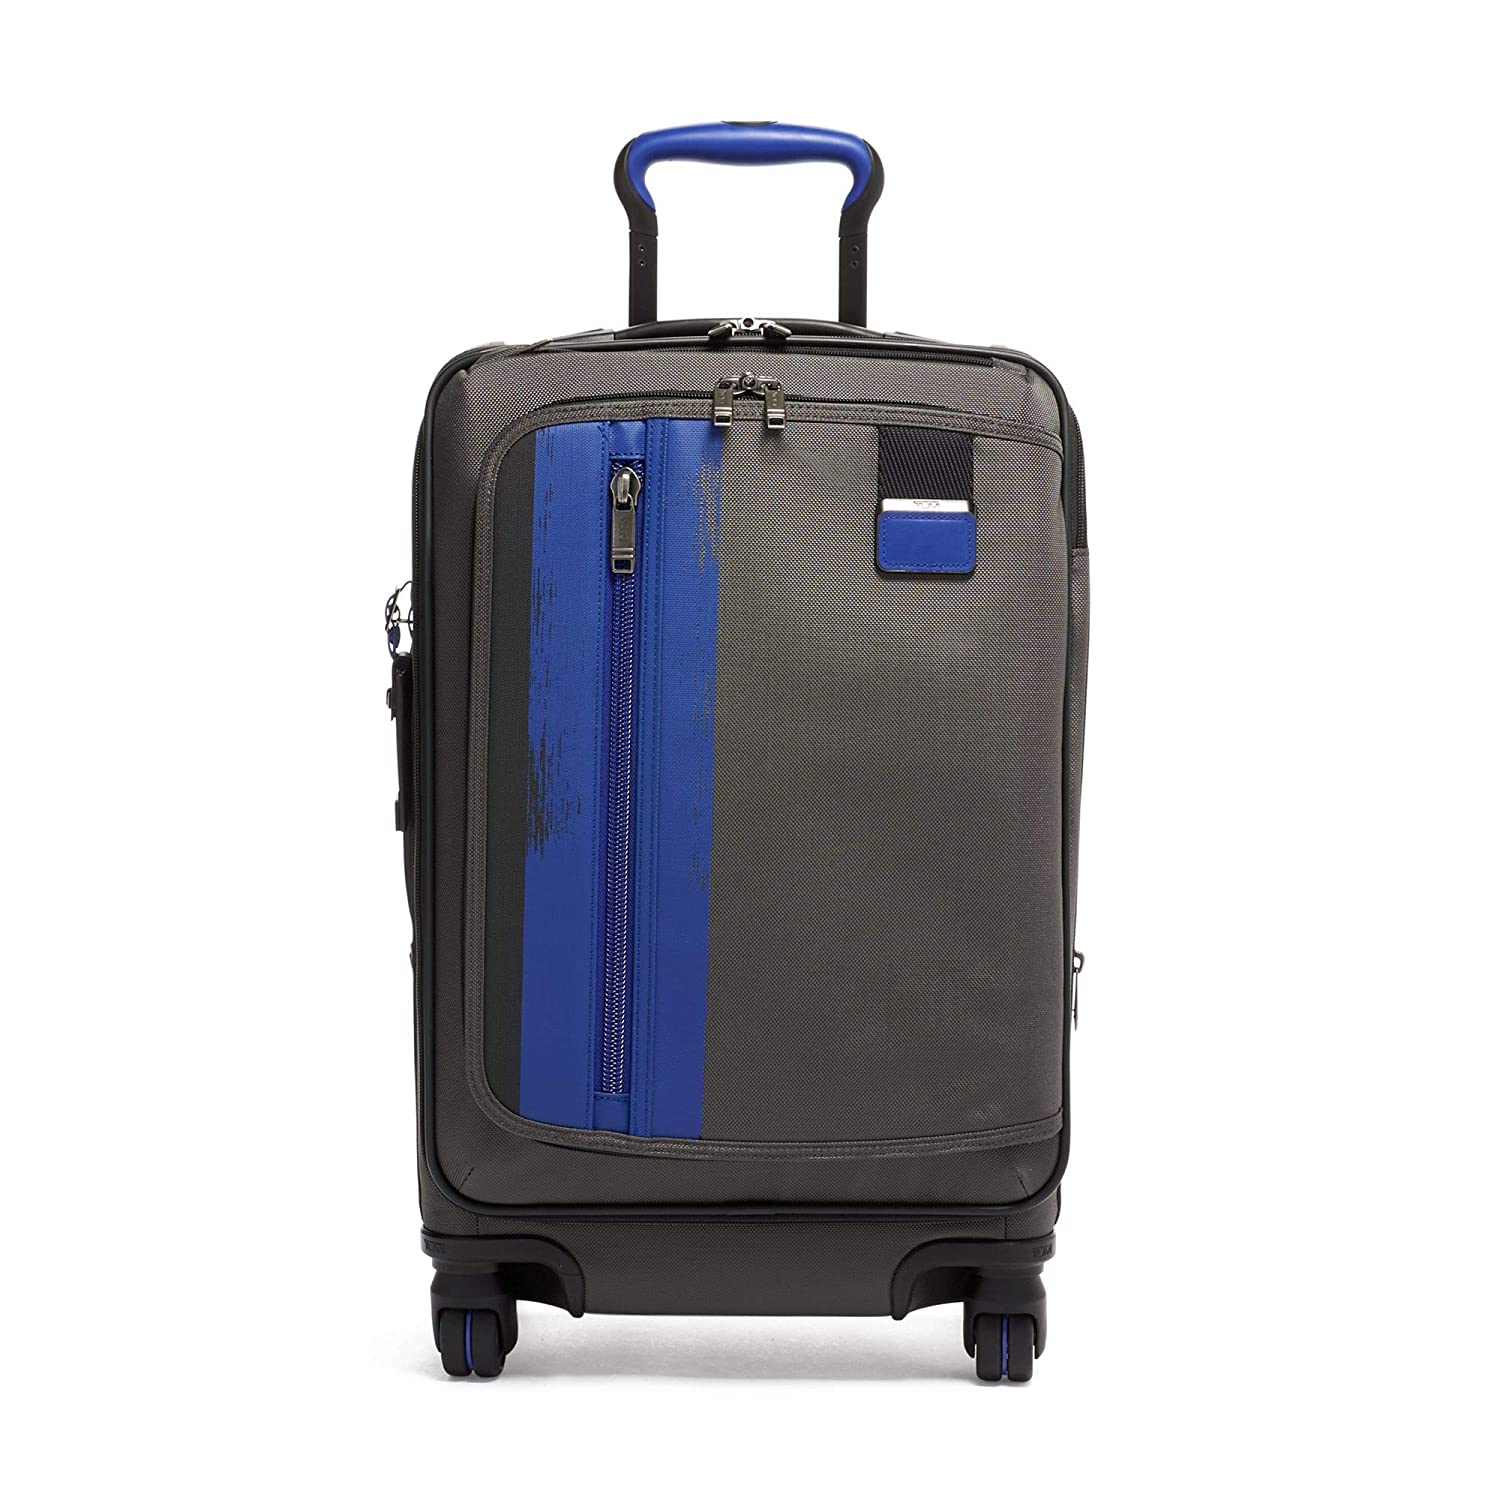 TUMI – Merge International Expandable Carry-On Luggage – 22 Inch Rolling Suitcase for Men and Women